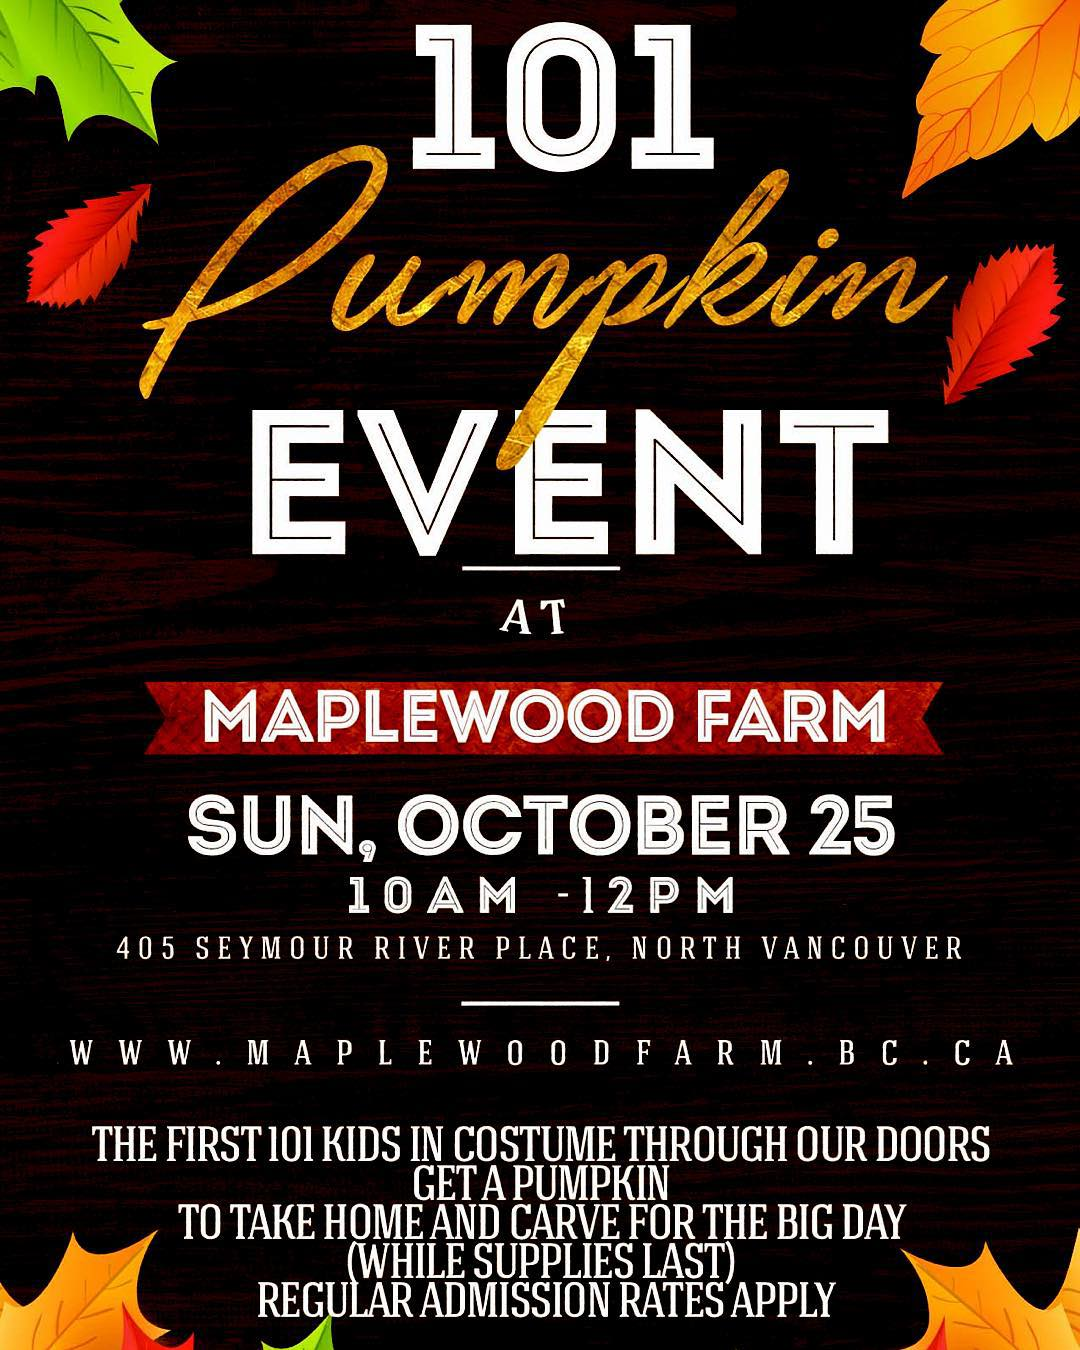 Instagram: #maplewoodfarm 101 Pumpkin Event is back! On Sunday, Oct 25 the first 101 kids in costume will get a pumpkin! Awesome! #northvancouver #pumpkin #event